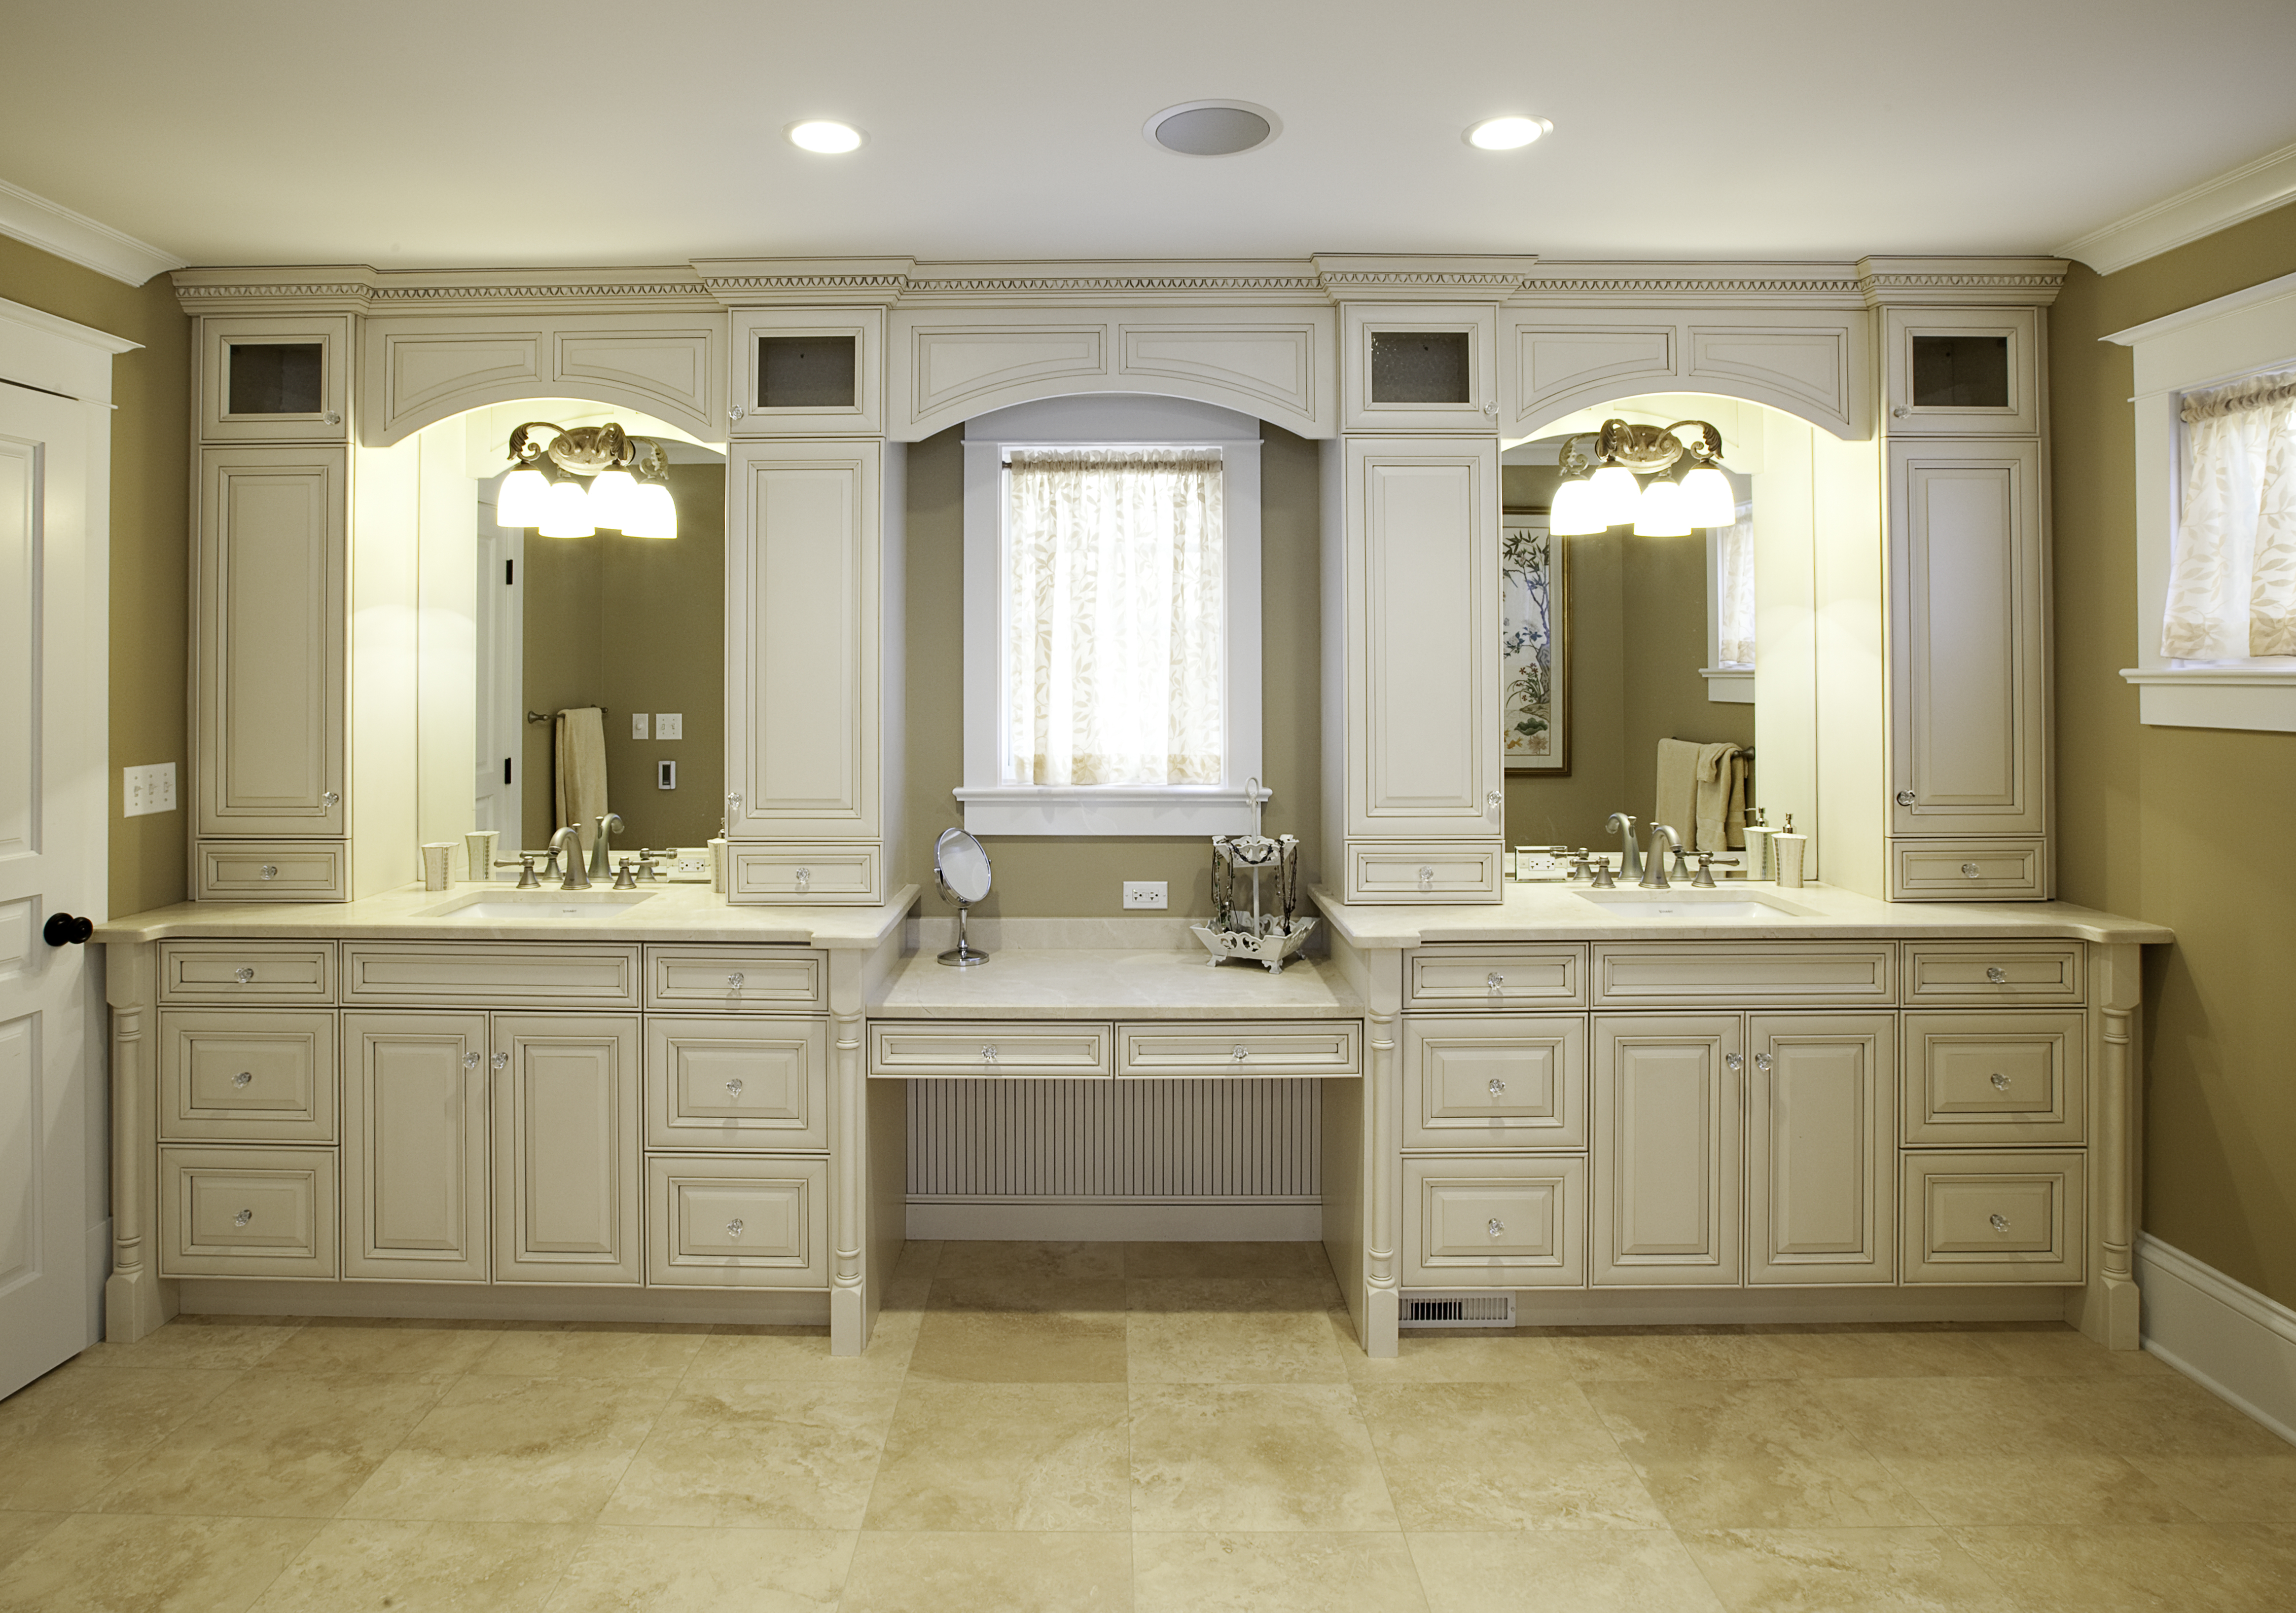 Kitchen Cabinet Bathroom Vanities Heights Builders Cabinet Supply intended for proportions 4656 X 3270